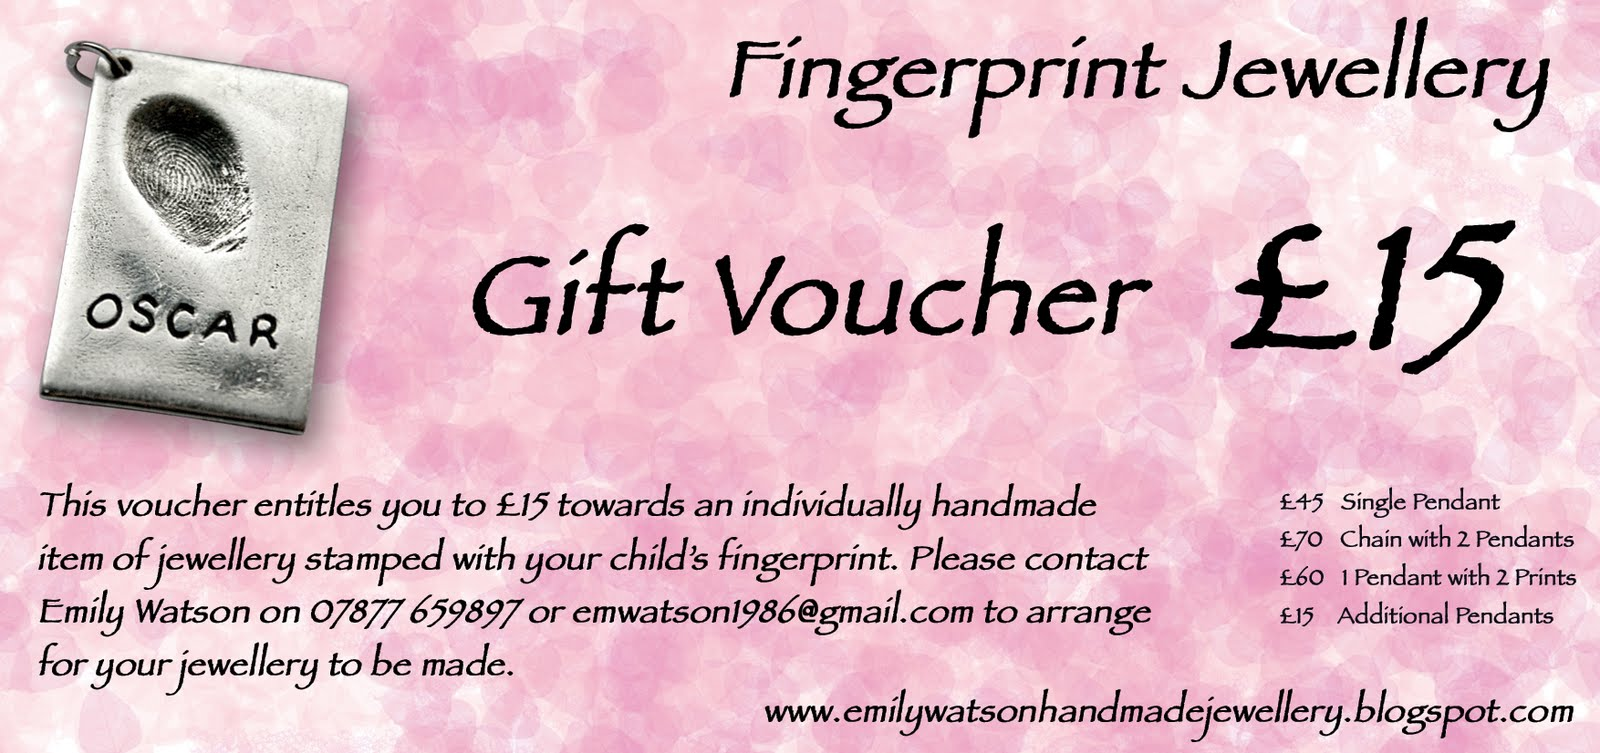 emily watson handmade jewellery  gift vouchers now available